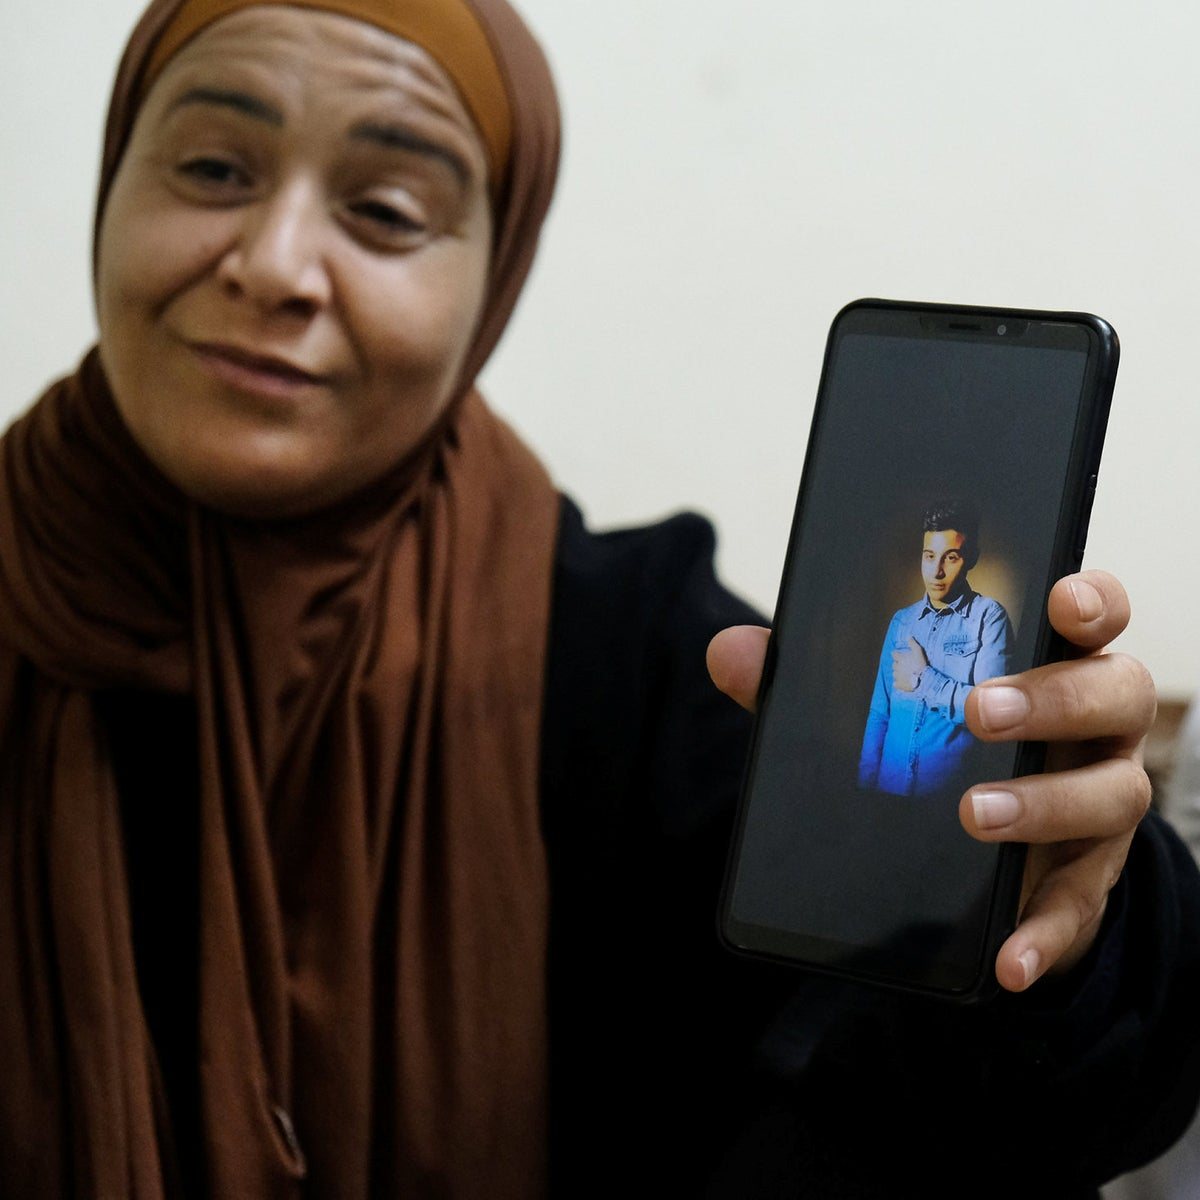 Zeid Qaysiyah's mother Barlanet shows a photo of her deceased son on her cell phone. Her other son, Jihad, sits next to her.